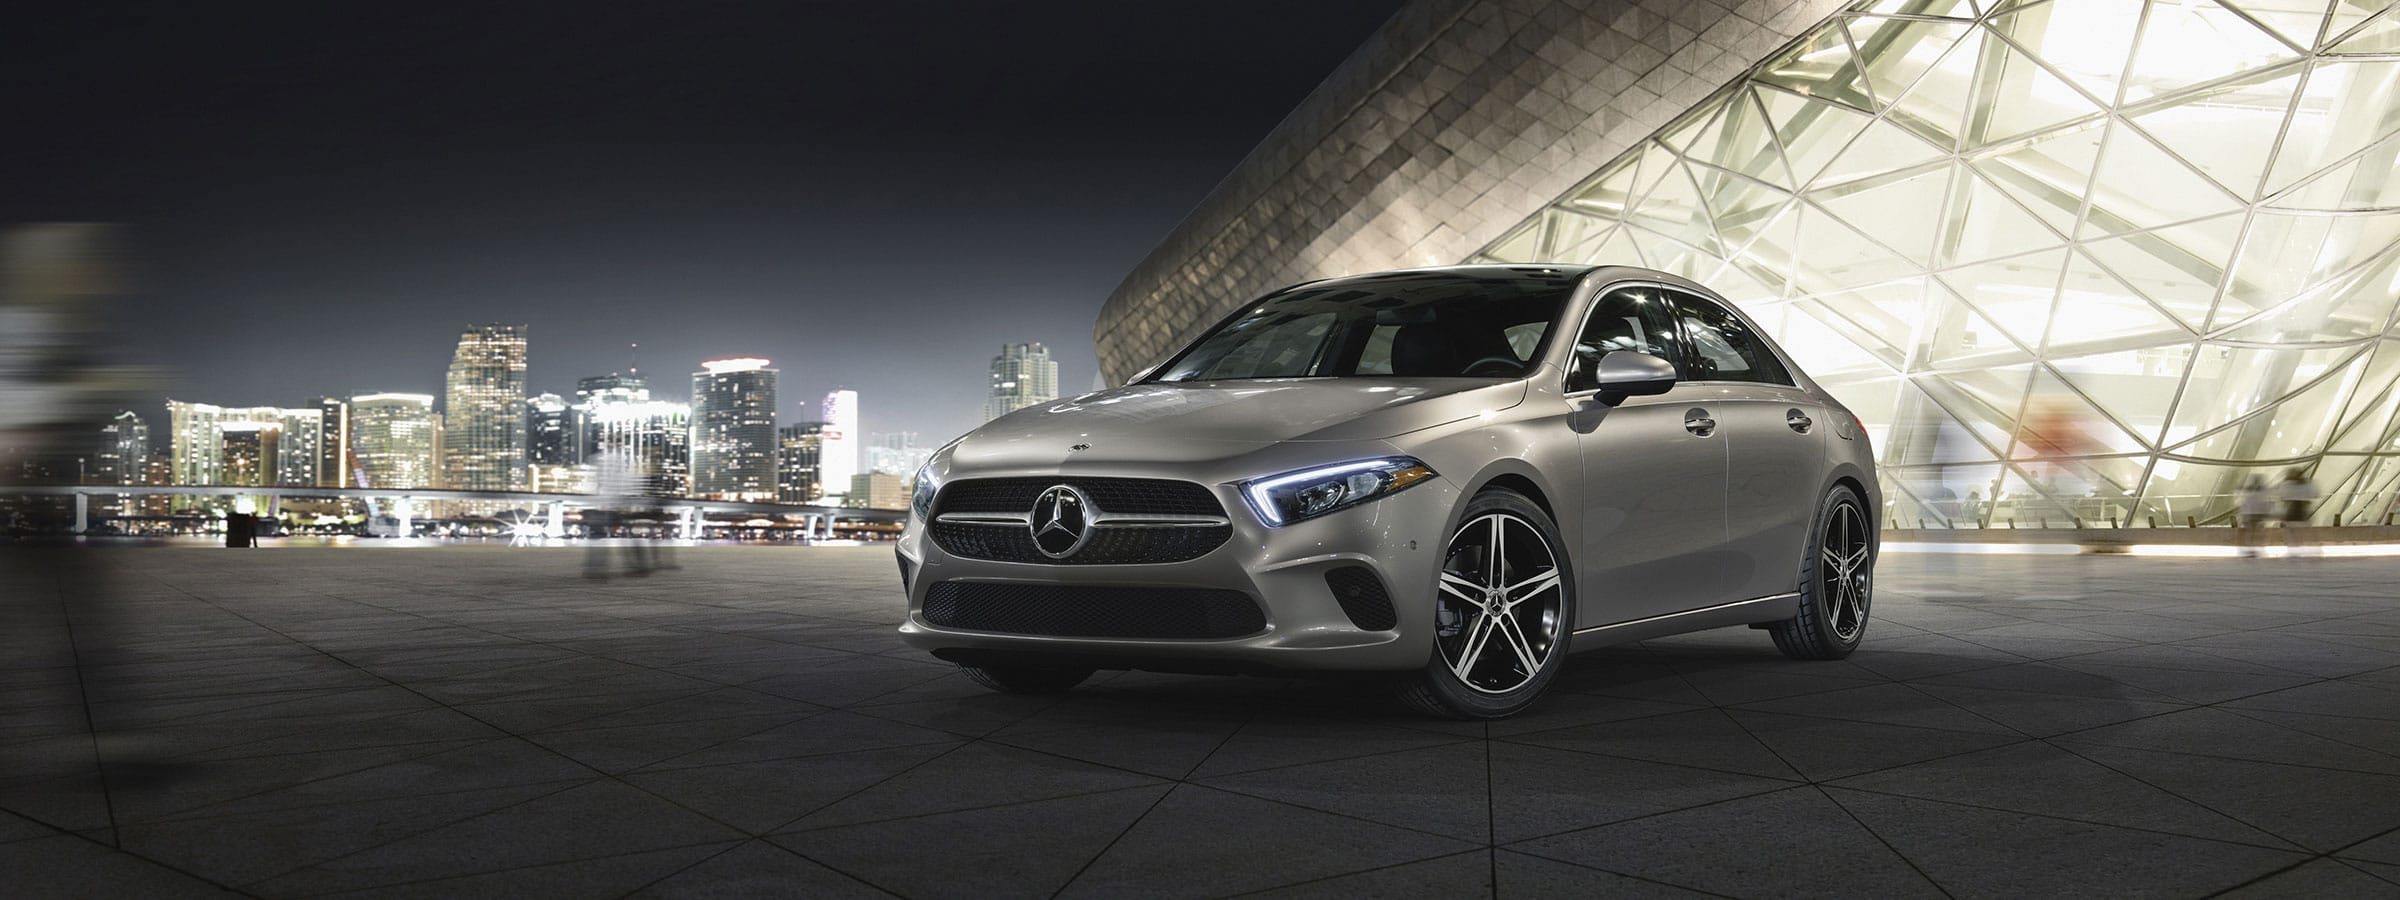 The 2021 A-Class Sedan in Iridium Silver with AMG Line Exterior and LED lights parked in the snow.